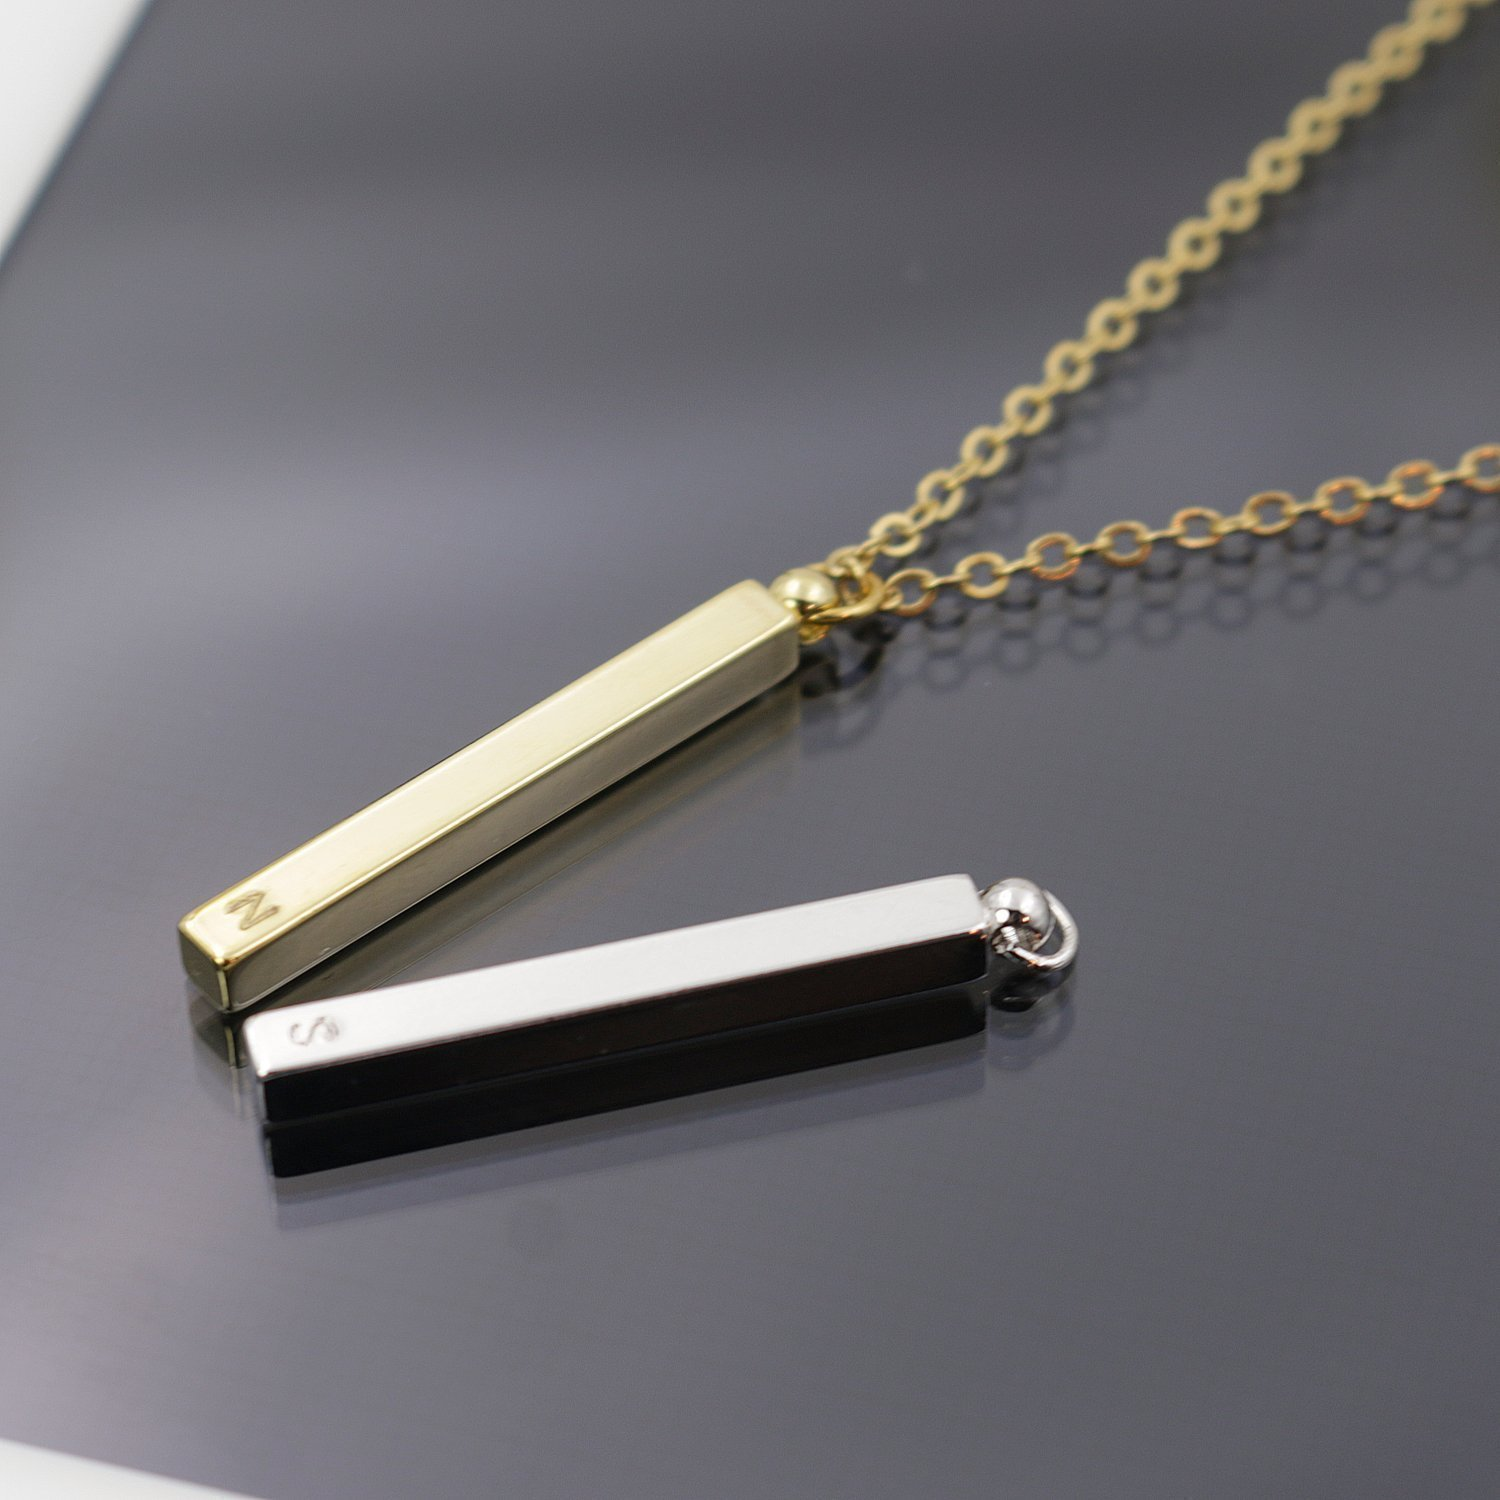 SAME DAY SHIPPING GIFT TIL 2PM CDT A Delicate Vertical 16K Gold Silver Rose Gold Bar Necklace - Dainty Handstamped Personalized square stick Bar Plate Initial Charms Necklace Bridesmaid Wedding gift